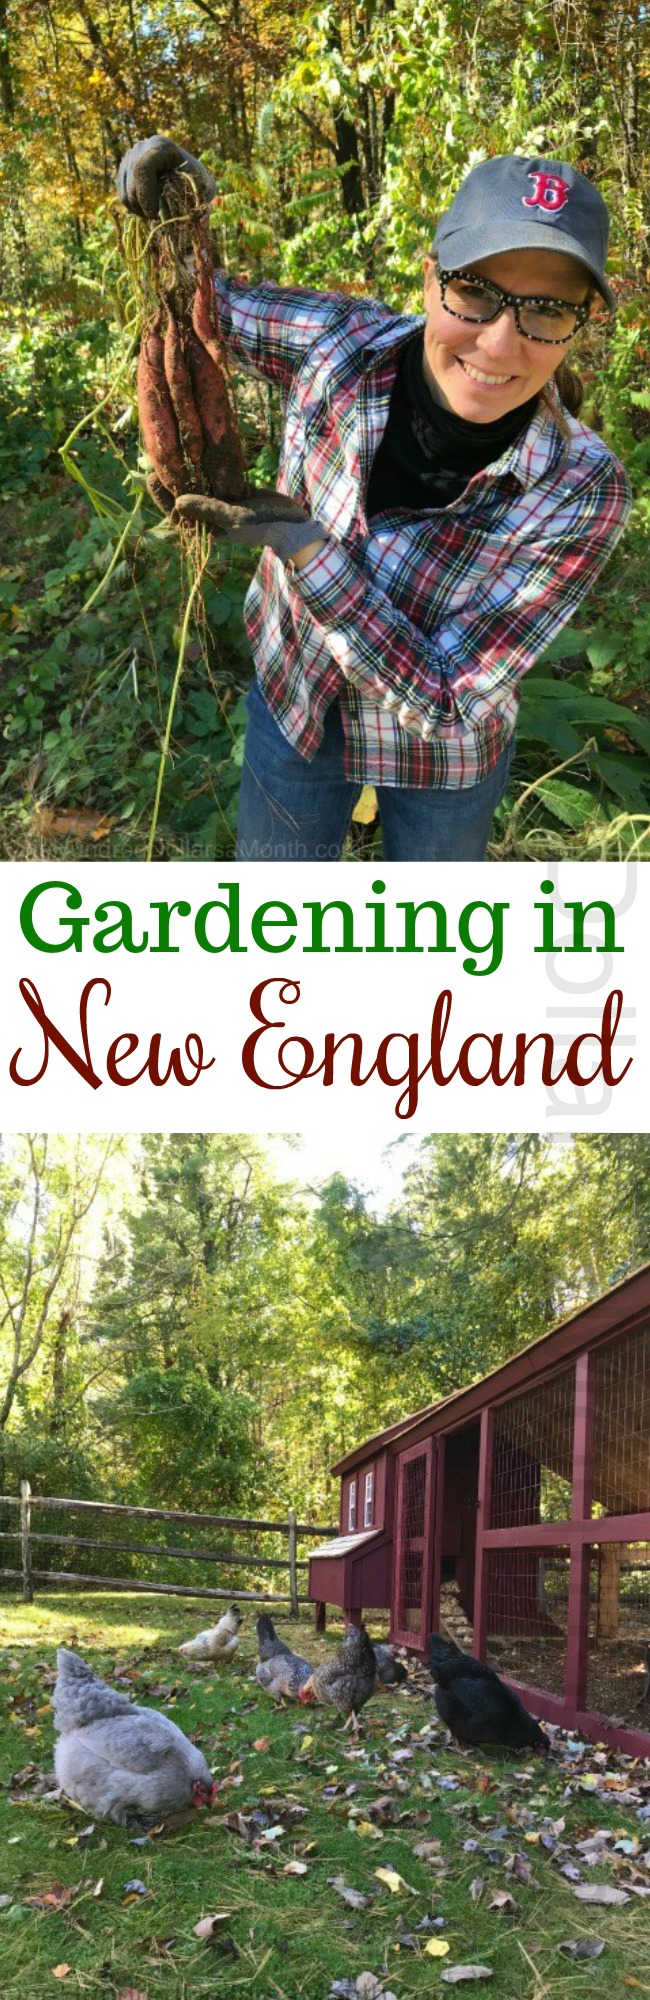 Gardening in New England – The Final Harvest of the Year